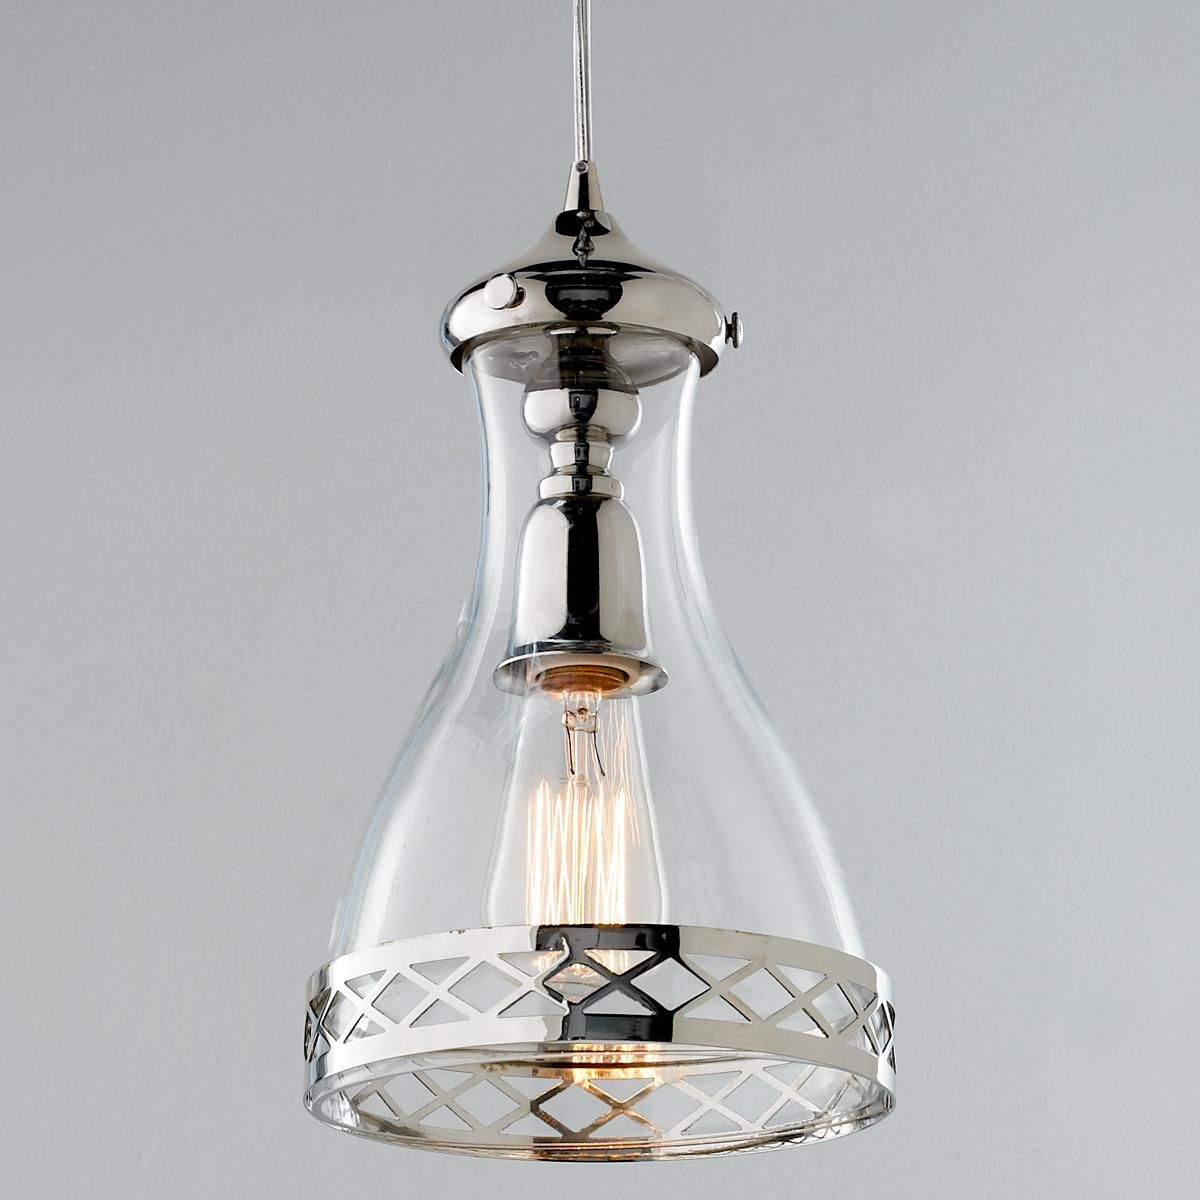 Kitchen Pendant Lighting Glass Shades Highland Park Pendant Simple Luxuries Kitchen Pendant